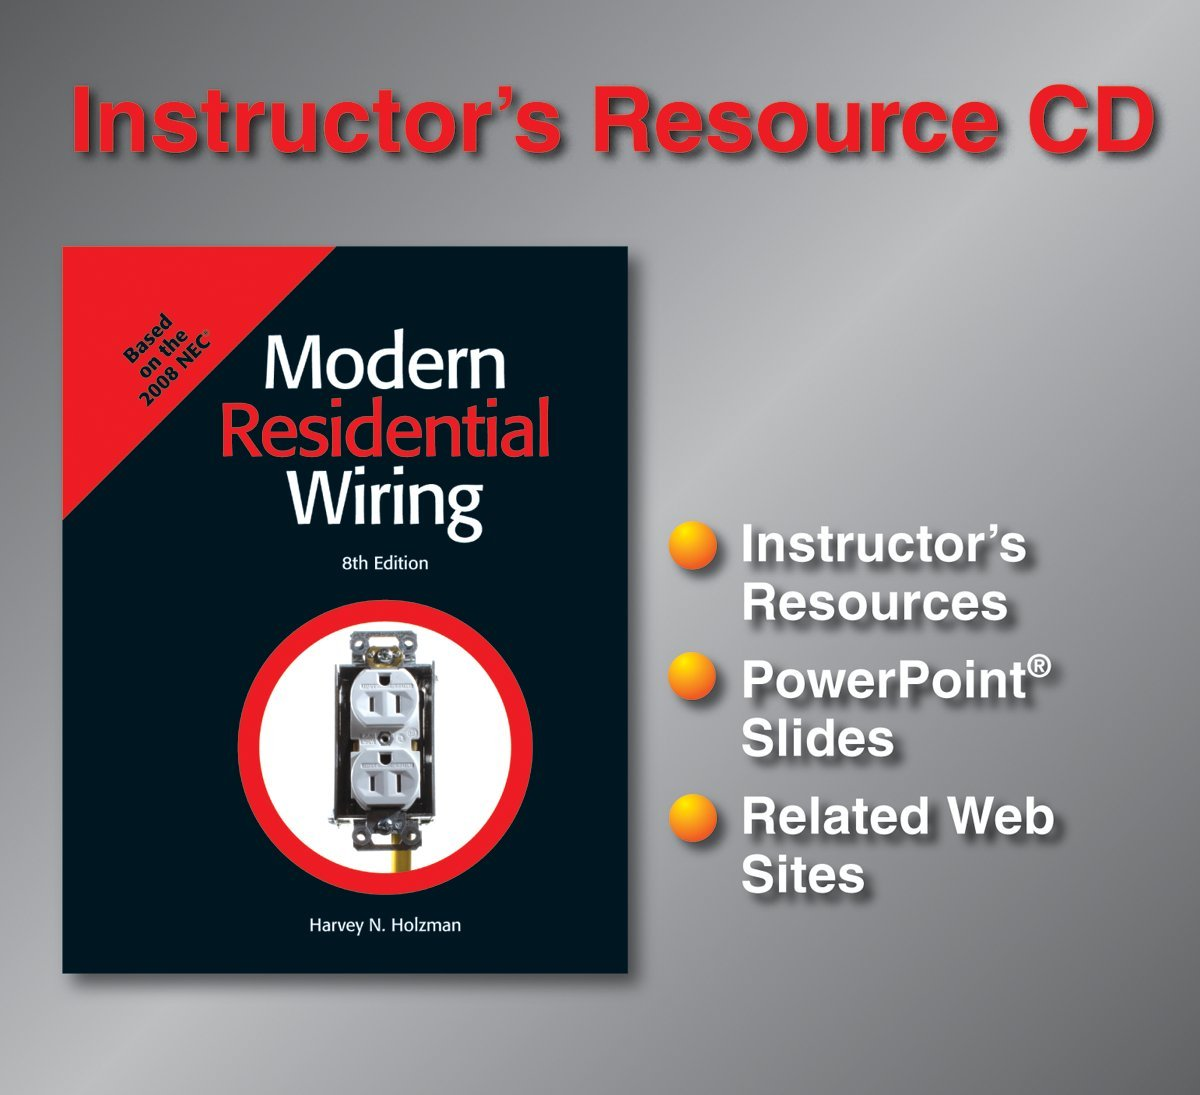 Buy Modern Residential Wiring Instructor's Resource Cd Book Online at Low  Prices in India | Modern Residential Wiring Instructor's Resource Cd  Reviews ...